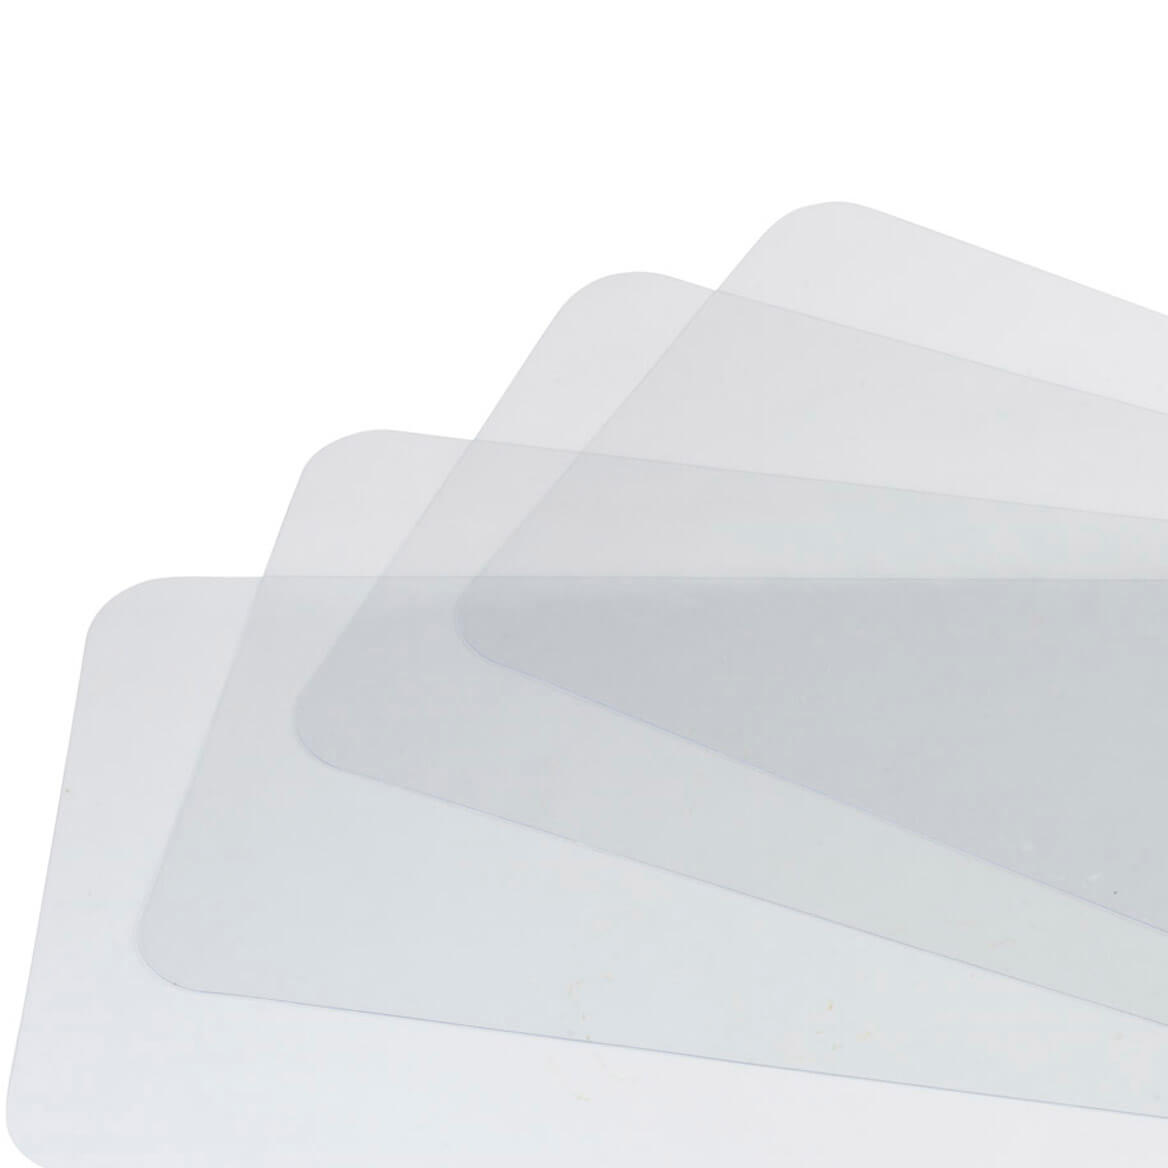 Clear Plastic Placemats Clear Placemats Placemats Miles Kimball - Clear placemats for table